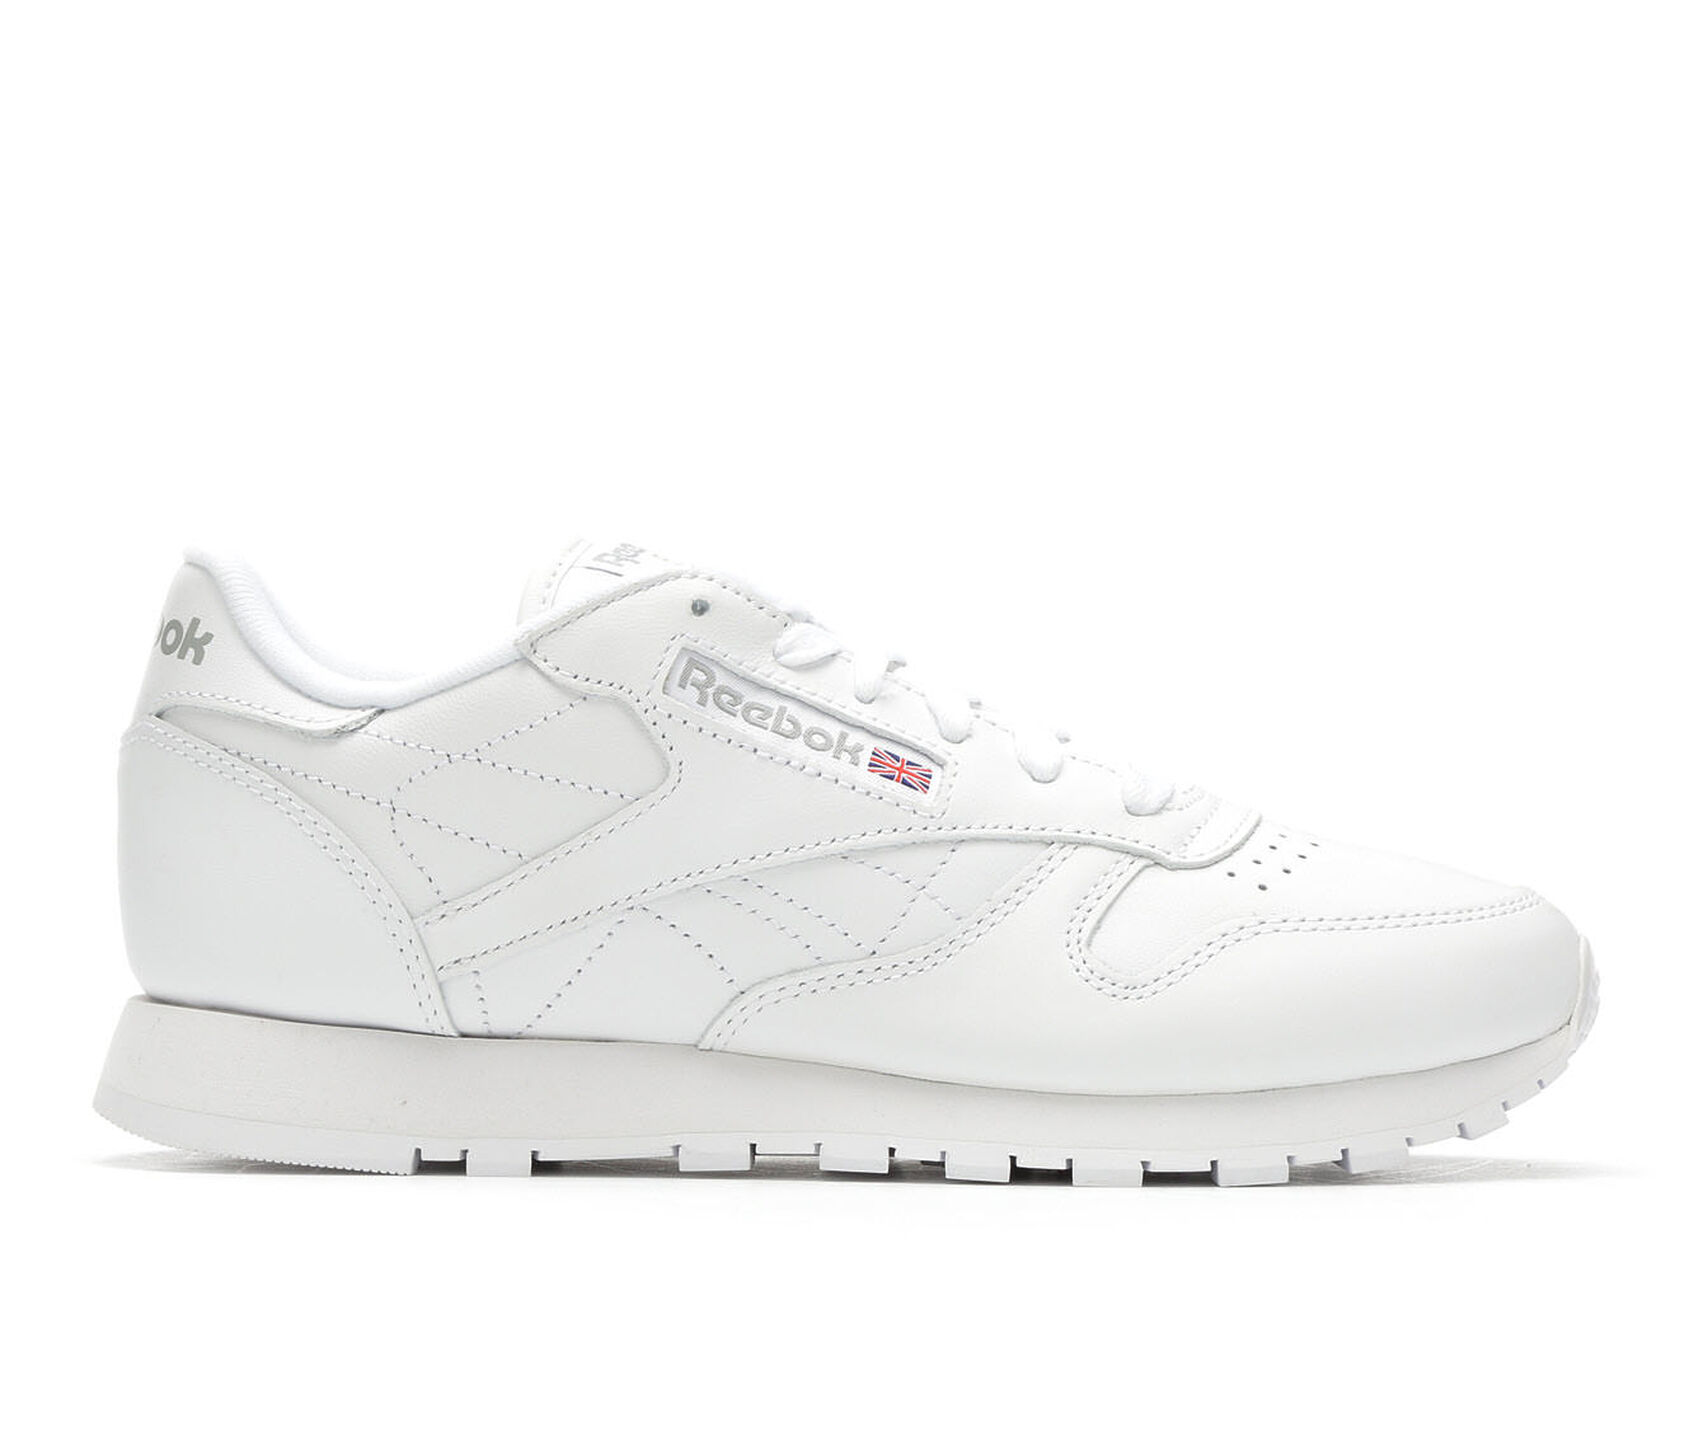 df3642387f14b ... Reebok Classic Leather Jog Retro Sneakers. Previous